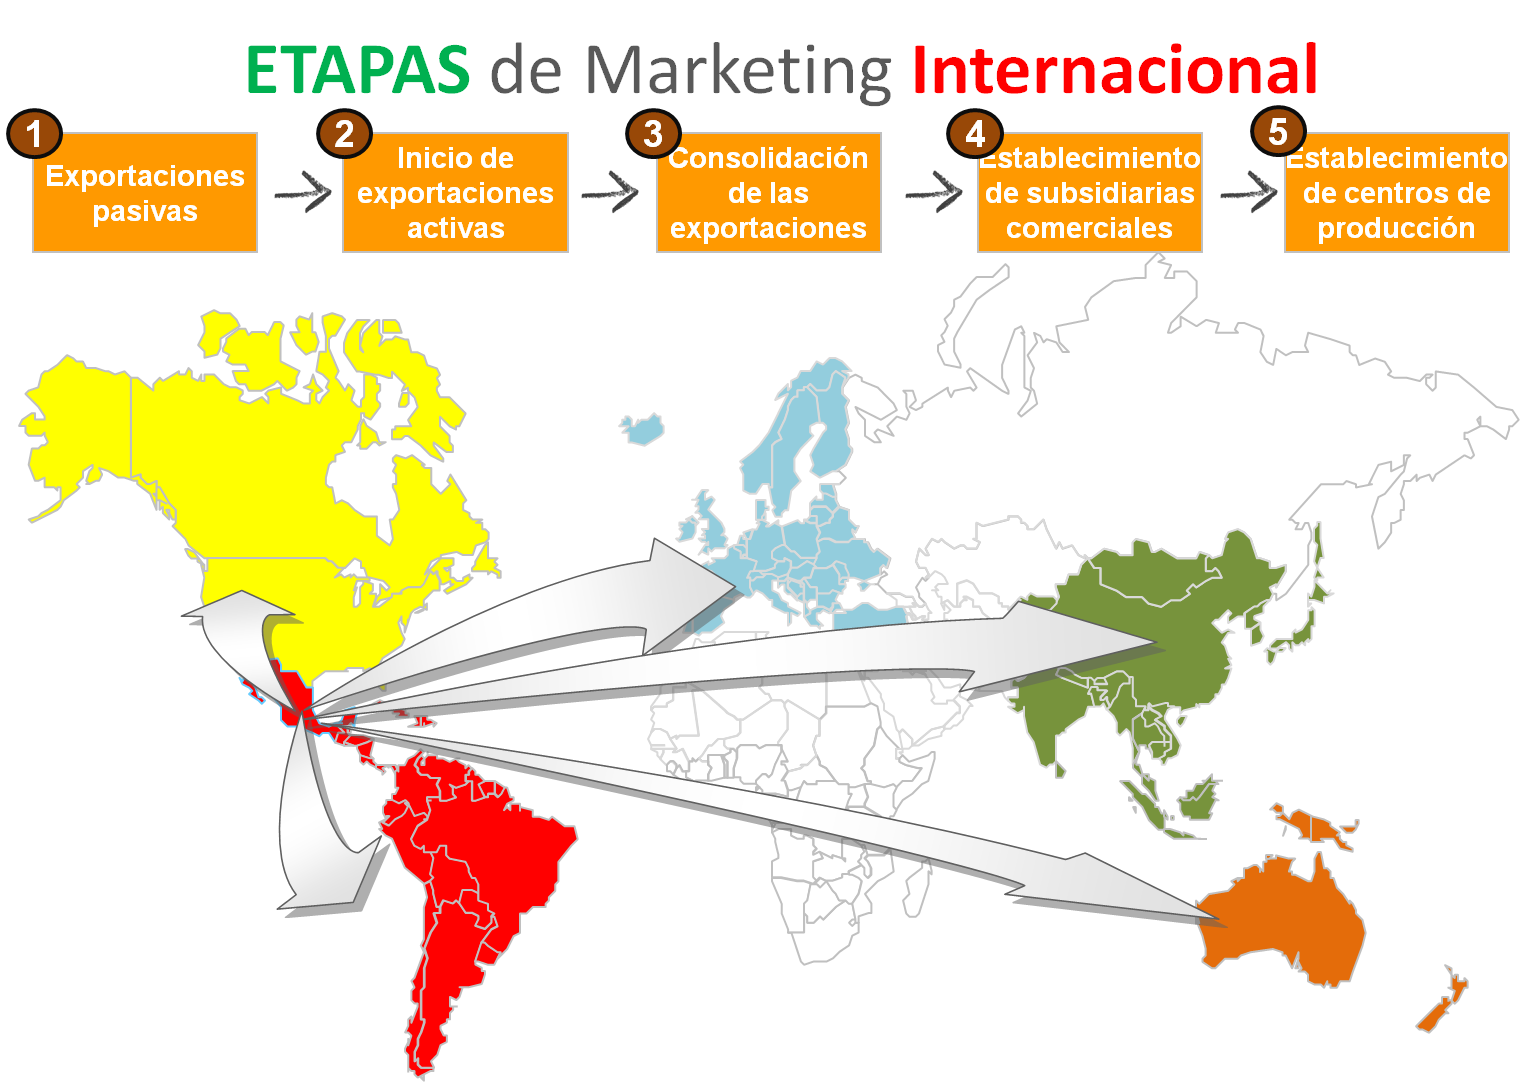 IEDGE-marketing-internacional-1